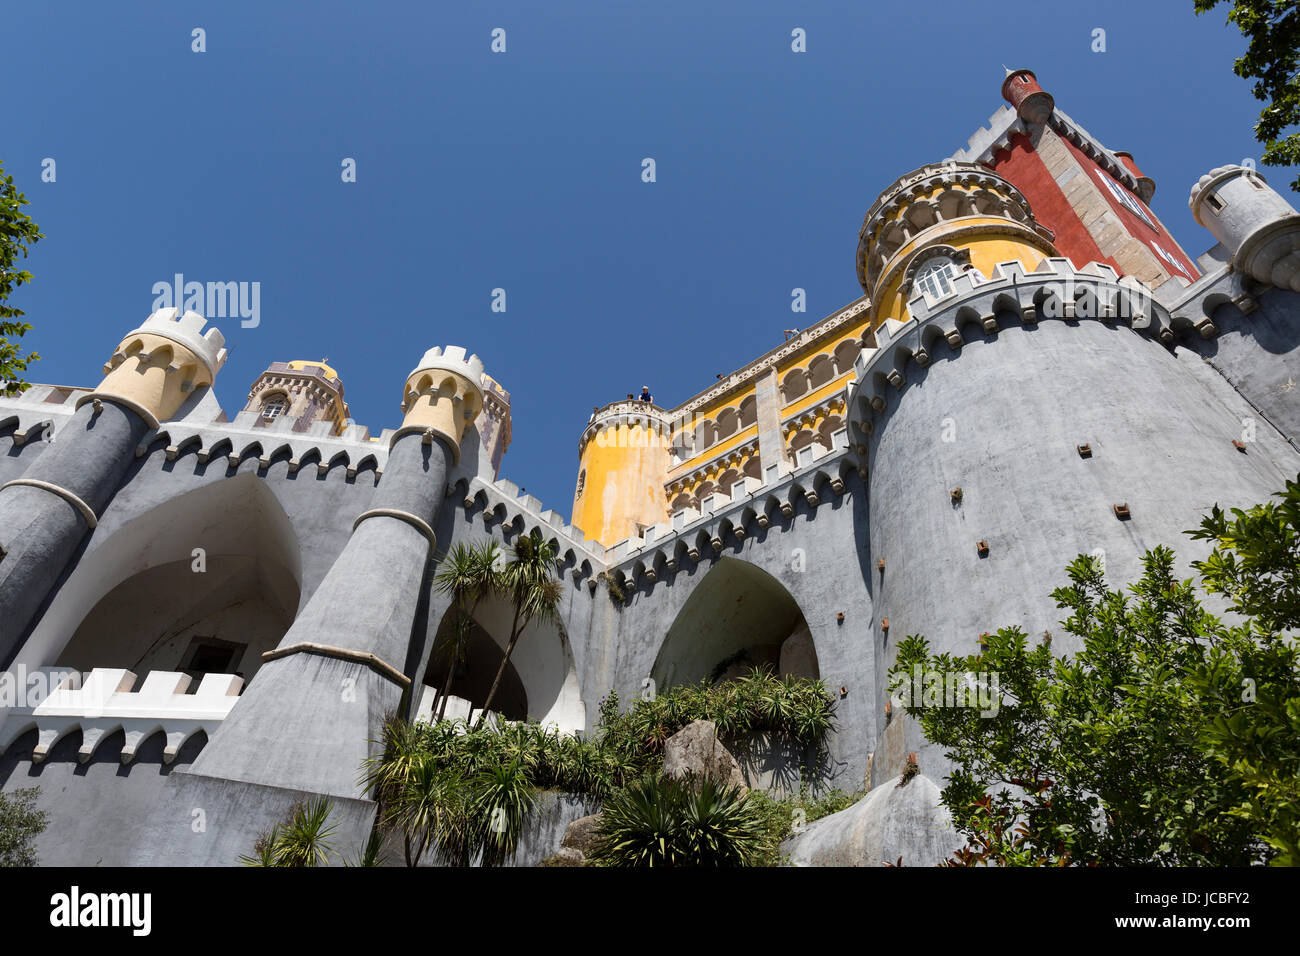 Palace of Pena, Sintra, Portugal - Stock Image